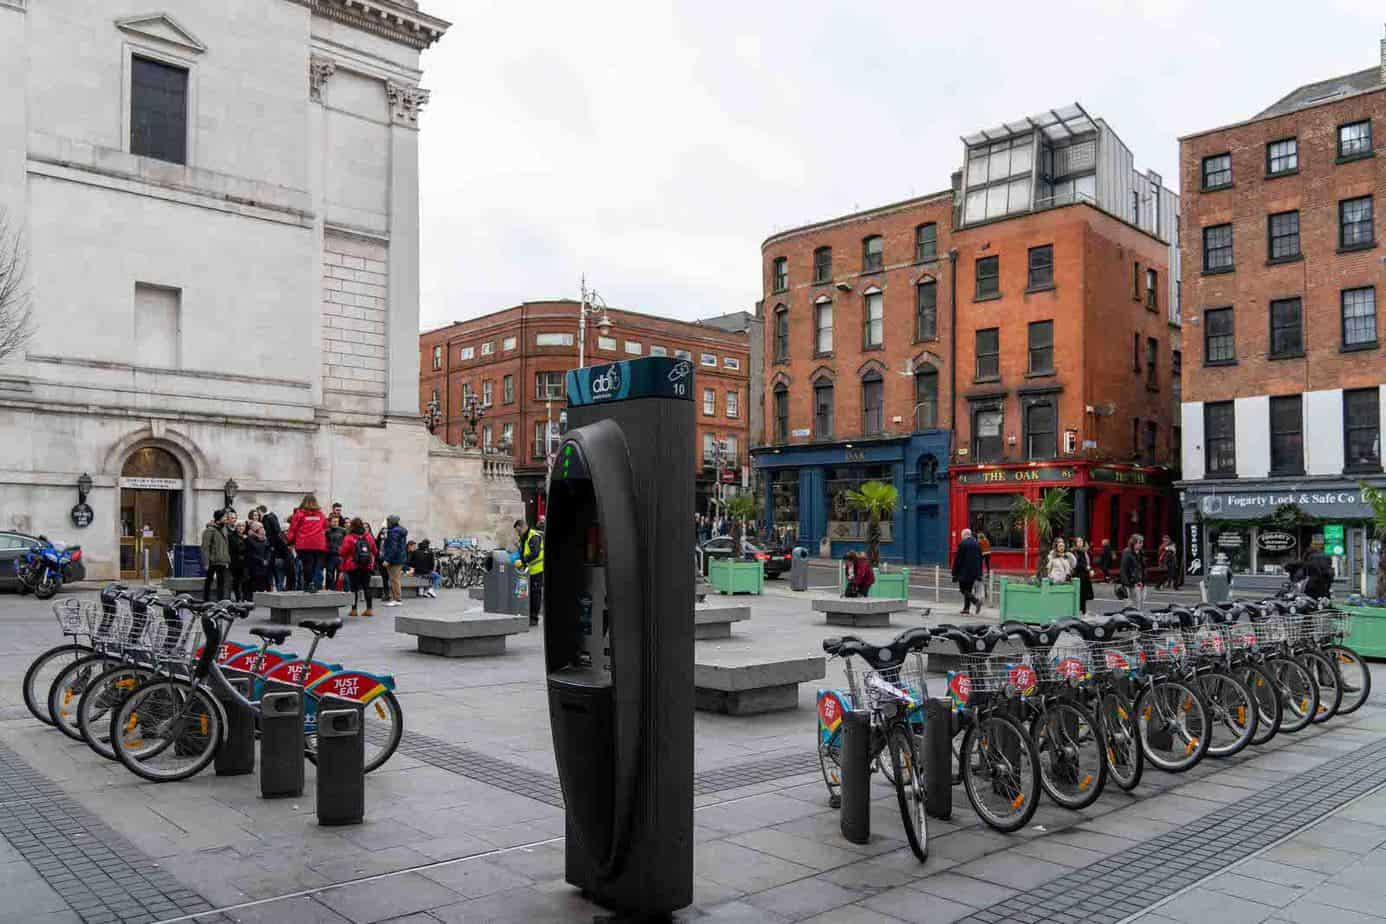 BARNARDO-SQUARE-DUBLINBIKES-DOCKING-STATION-10-IS-LOCATED-HERE-158828-1